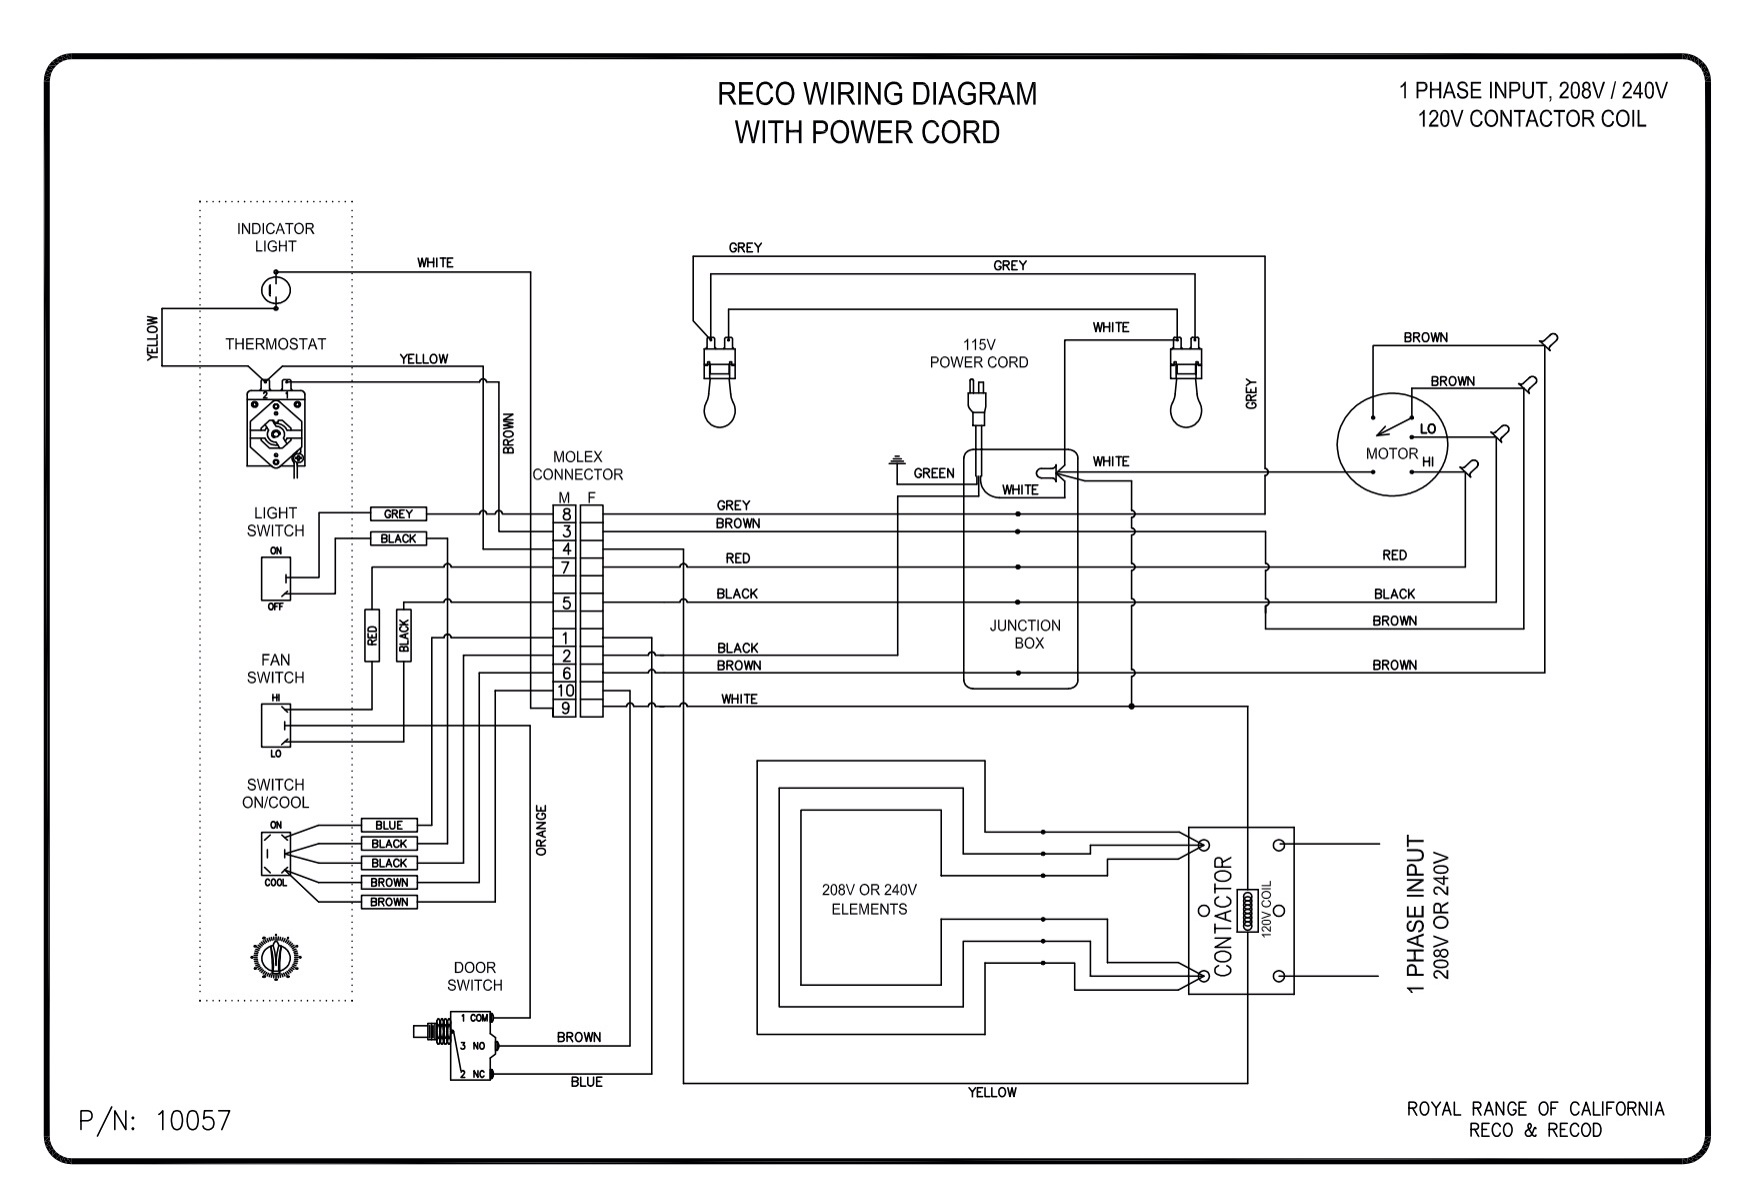 Diagram Zer Wiring Diagrams Full Version Hd Quality Wiring Diagrams Diagramforlife Conservatoire Chanterie Fr